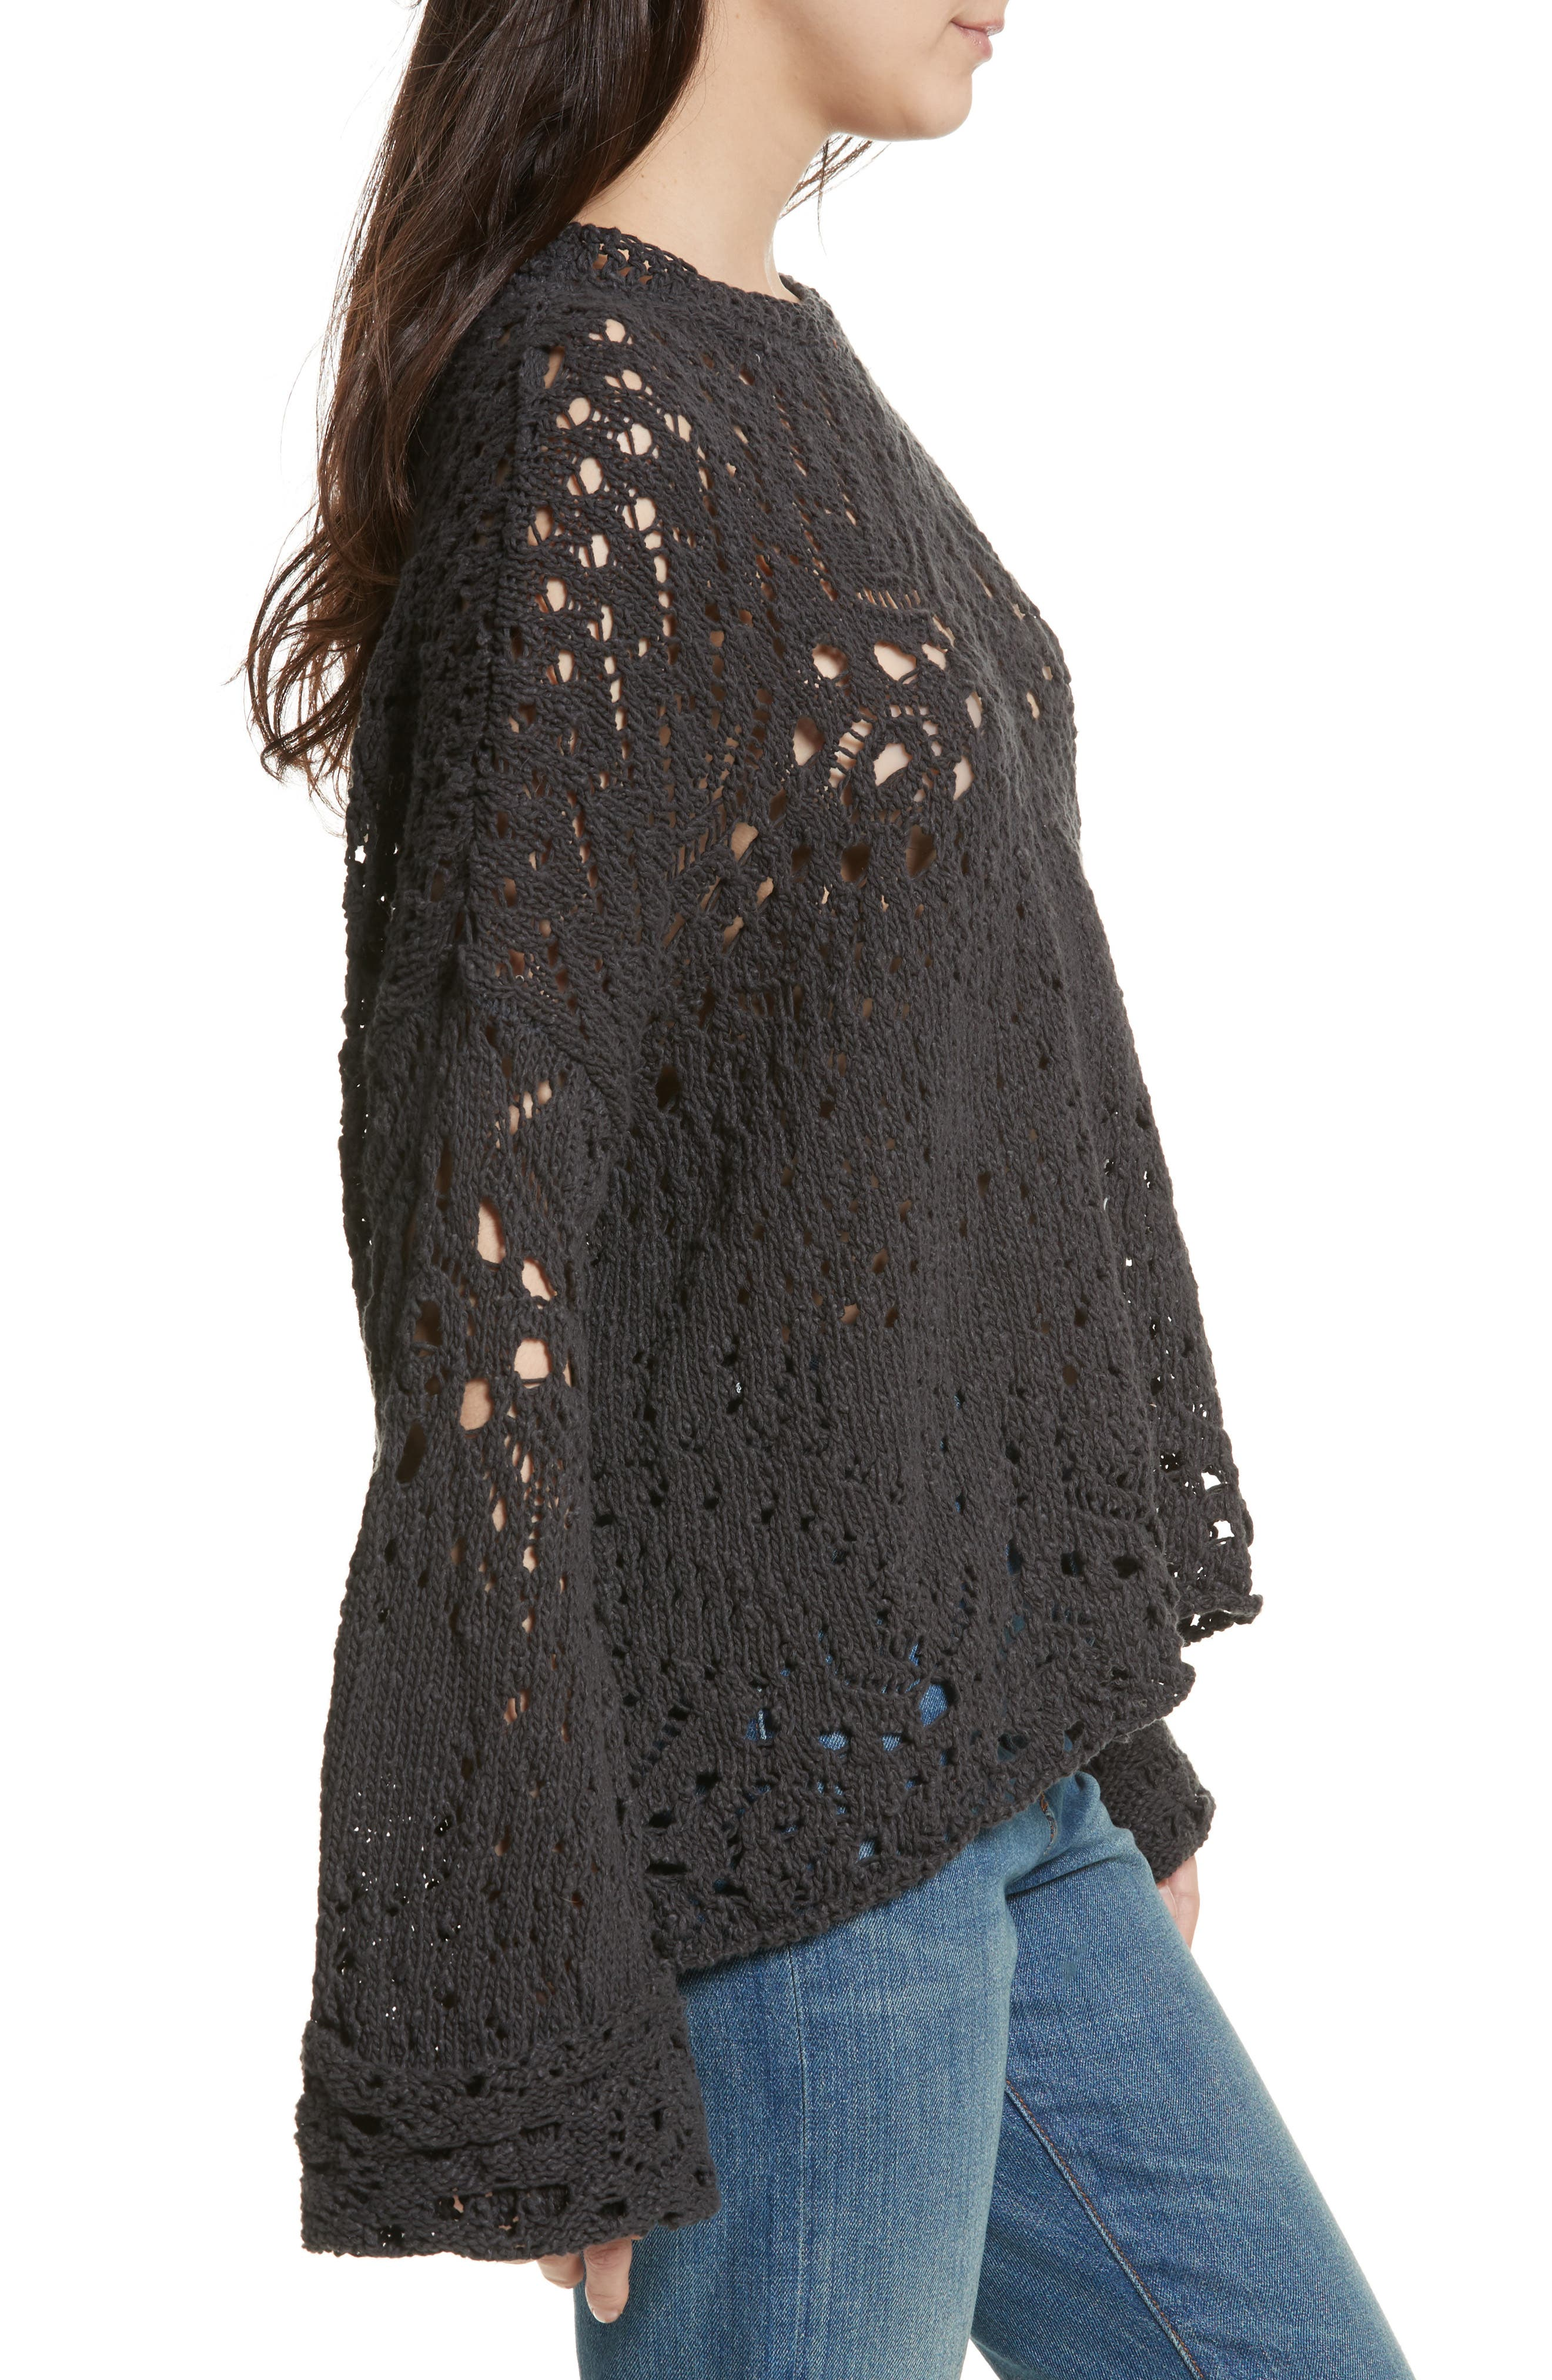 Traveling Lace Sweater,                             Alternate thumbnail 3, color,                             009